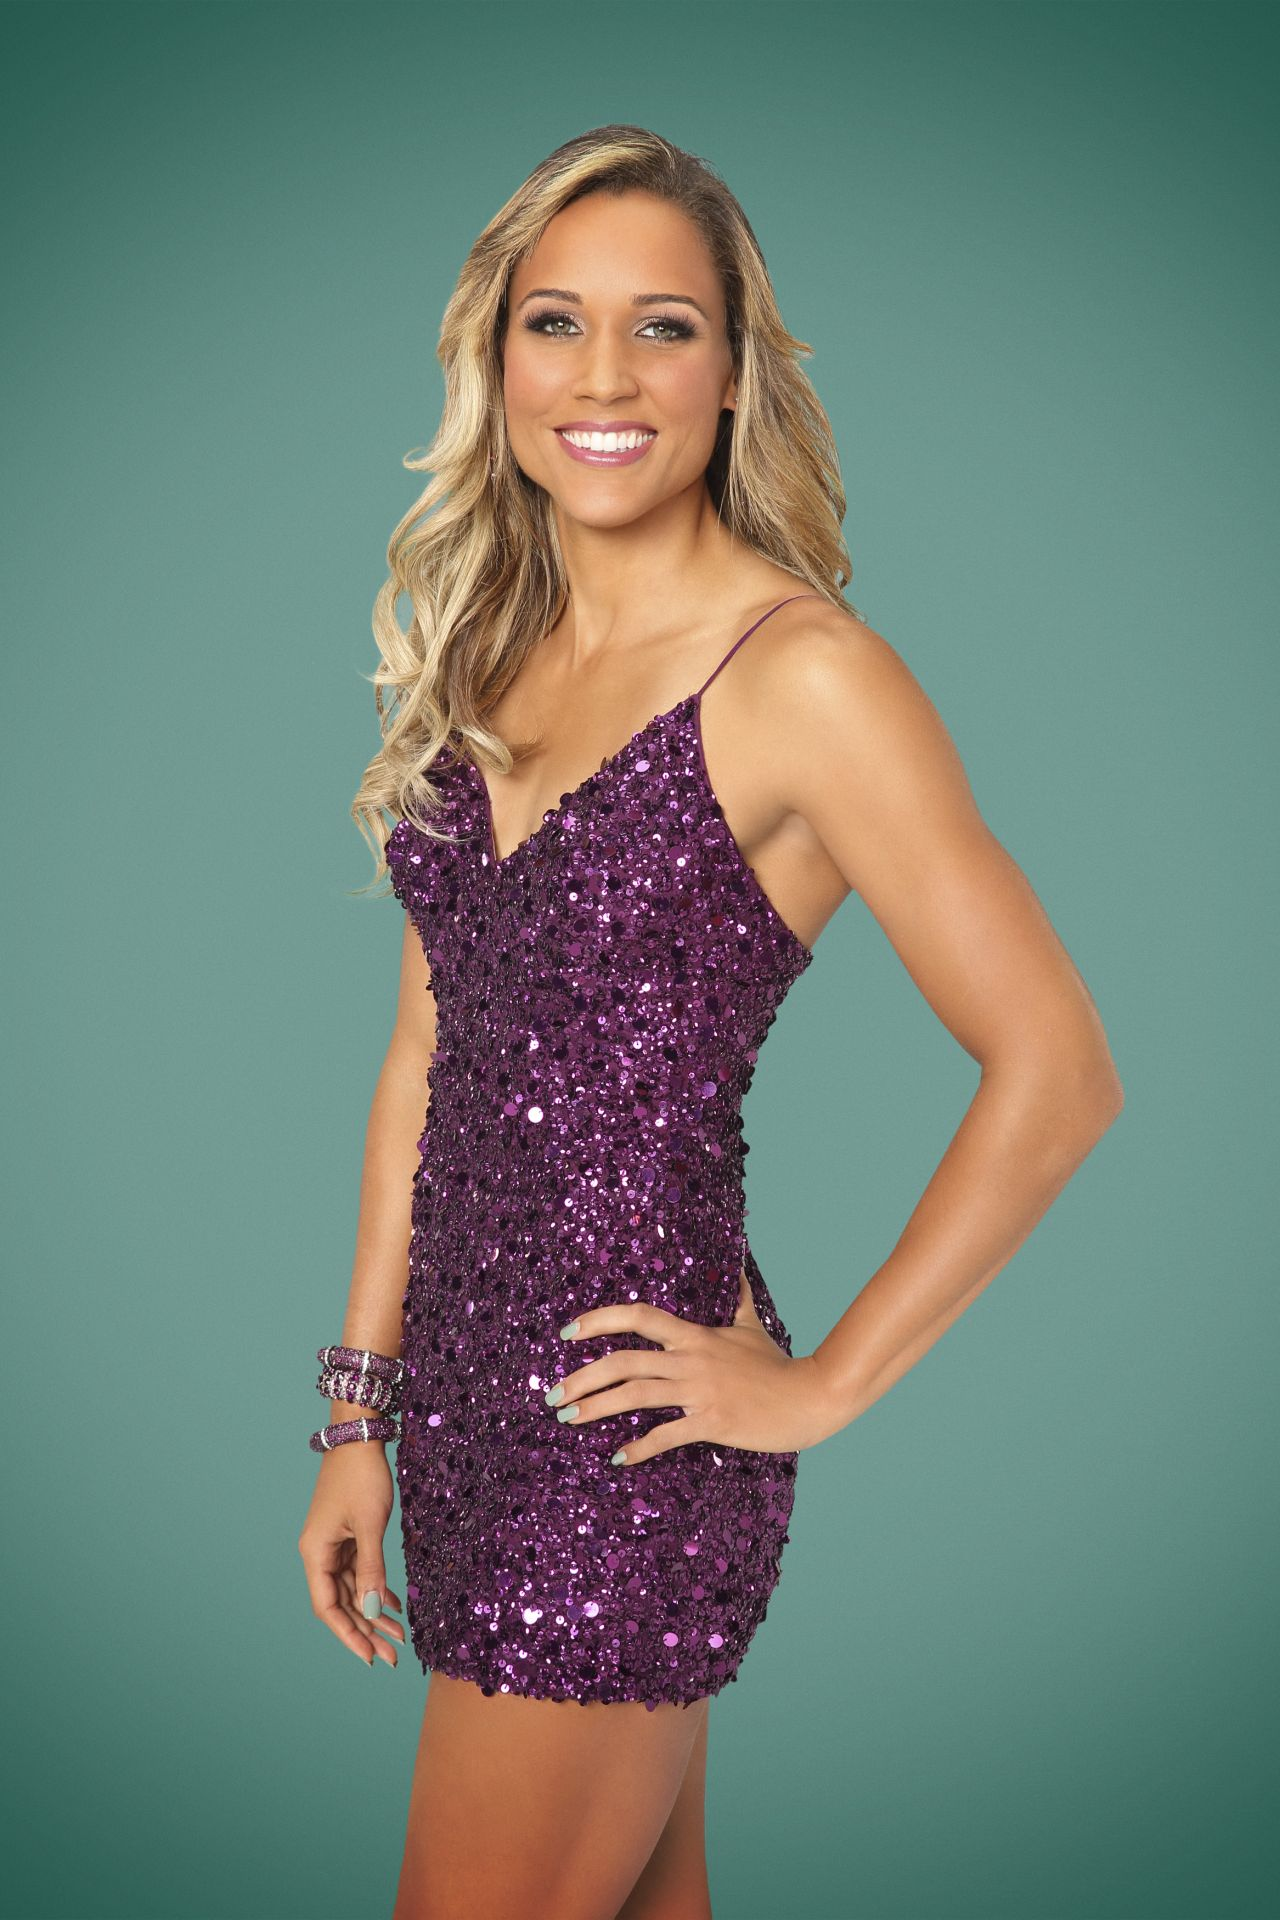 Lolo Jones Promoshoot – Dancing With the Stars Season 19